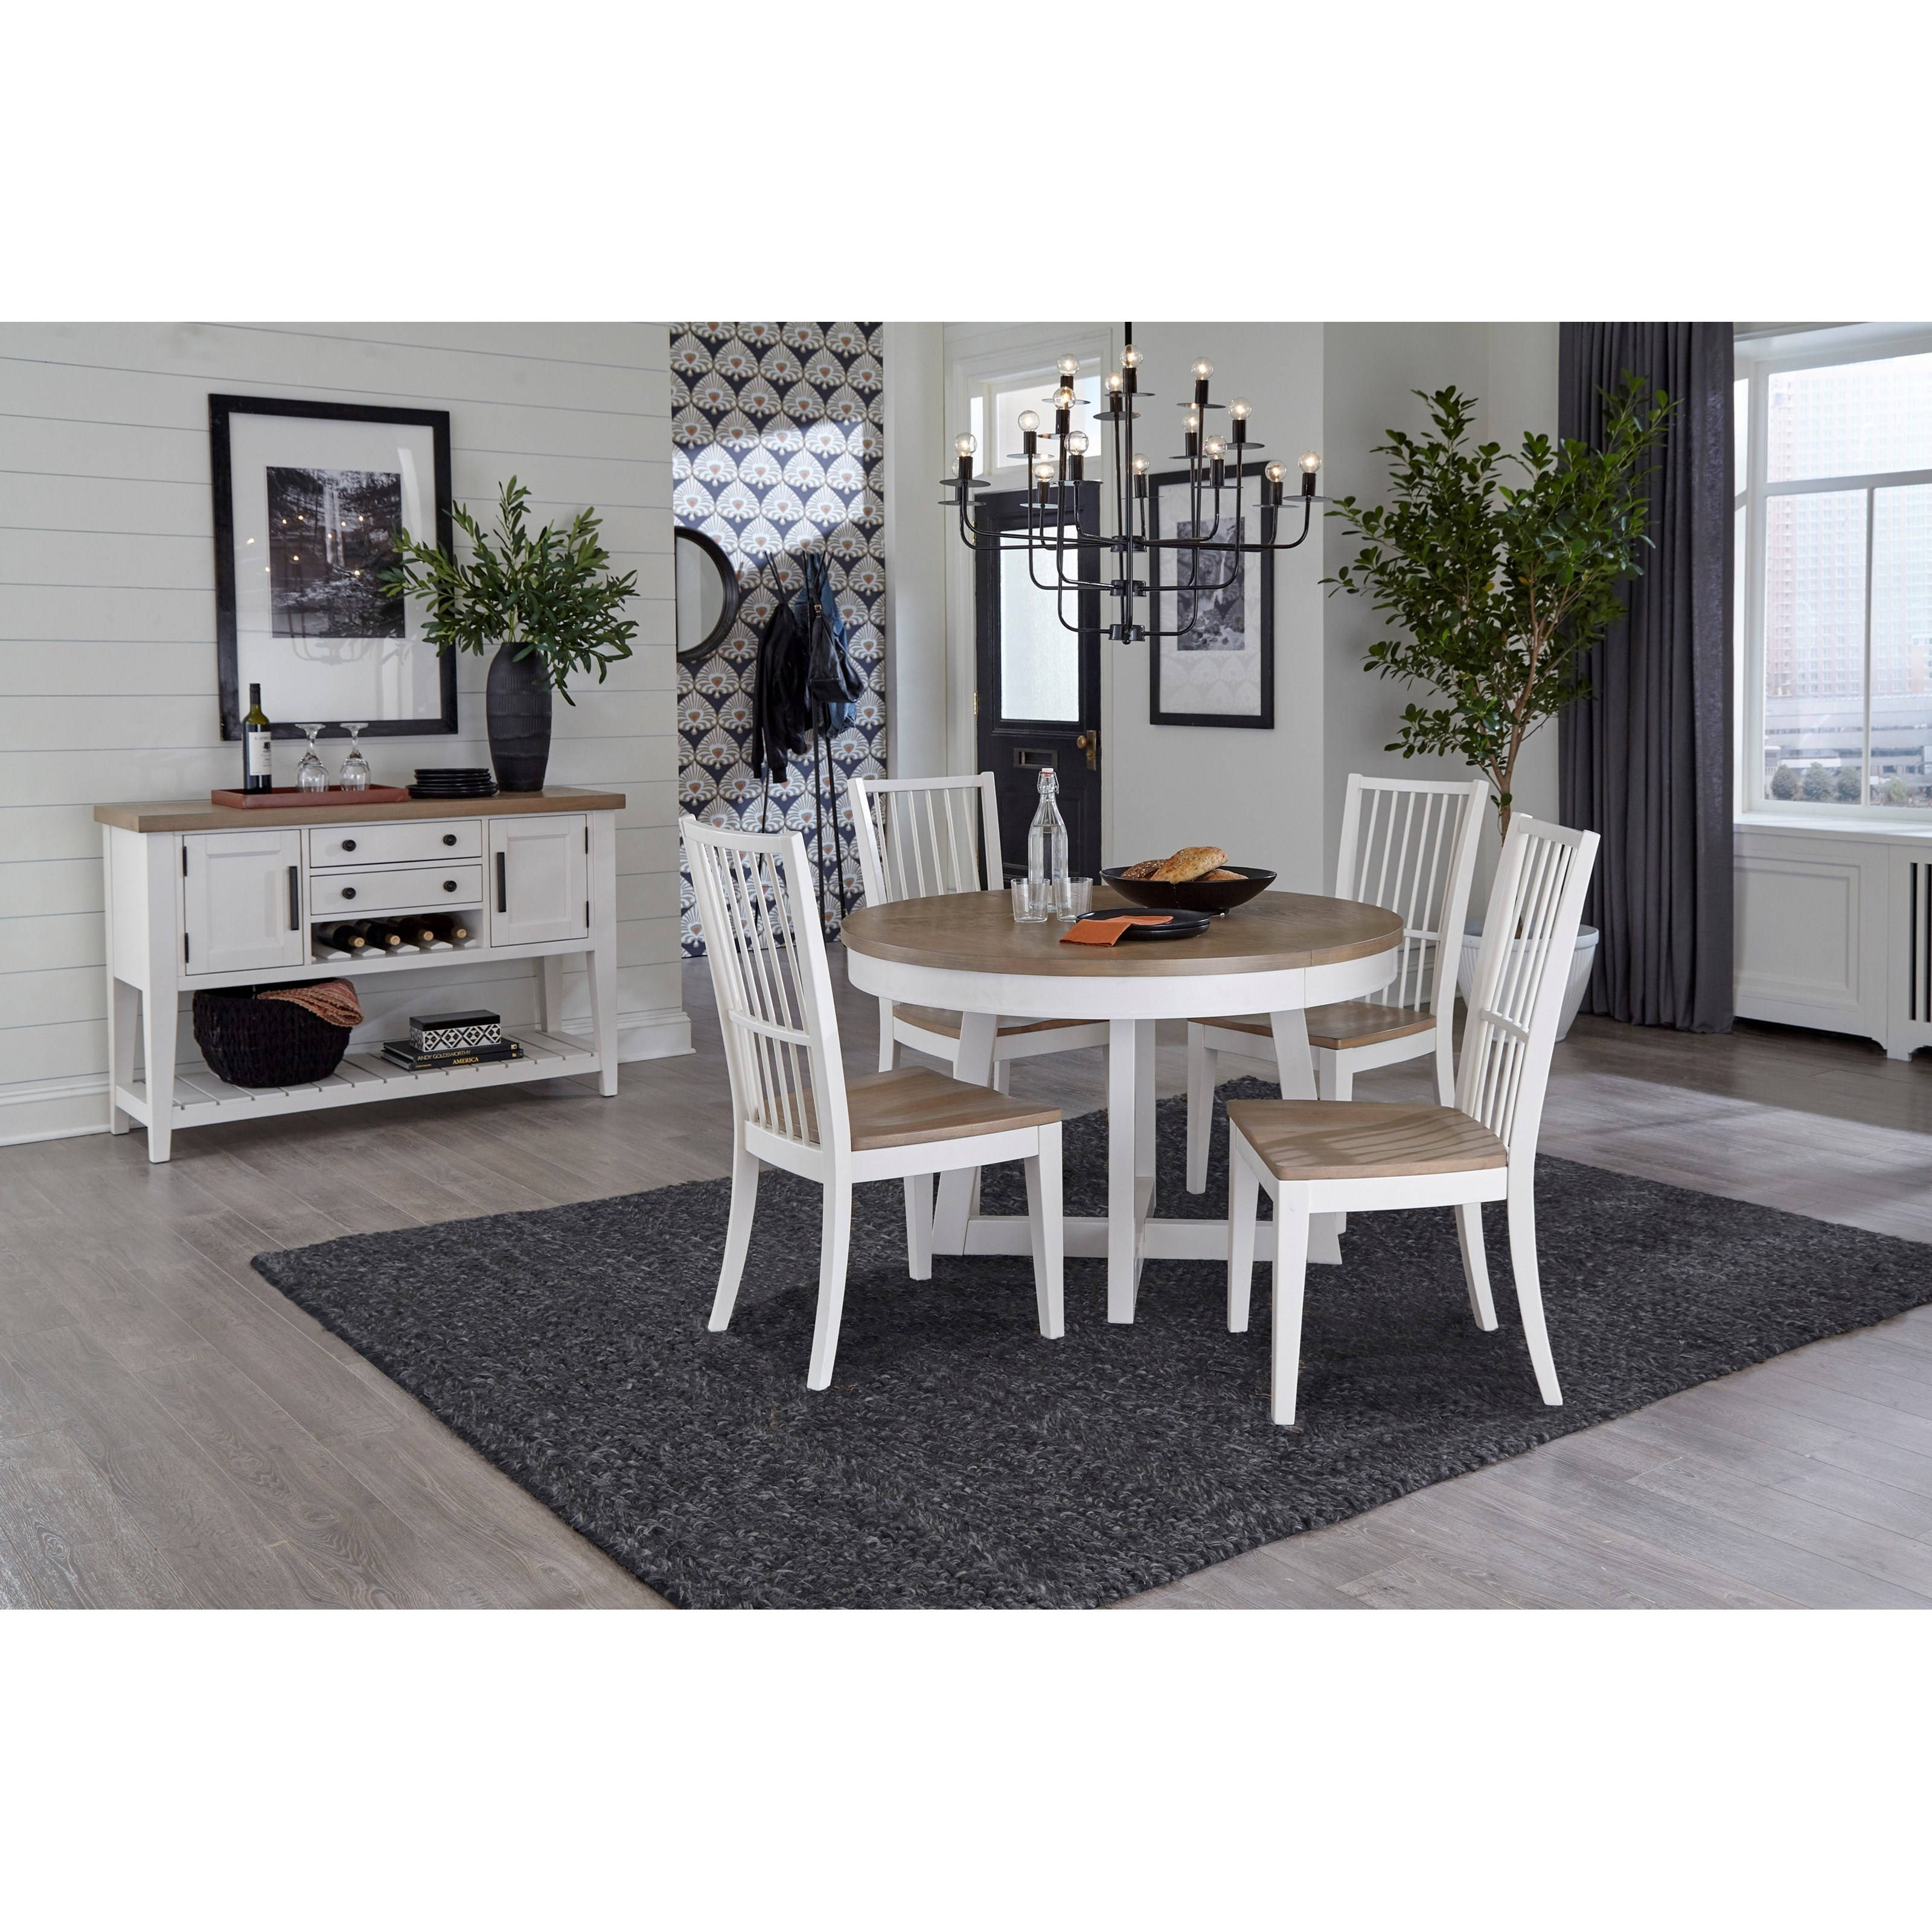 Americana Modern Casual Dining Room Group by Parker House at Zak's Home